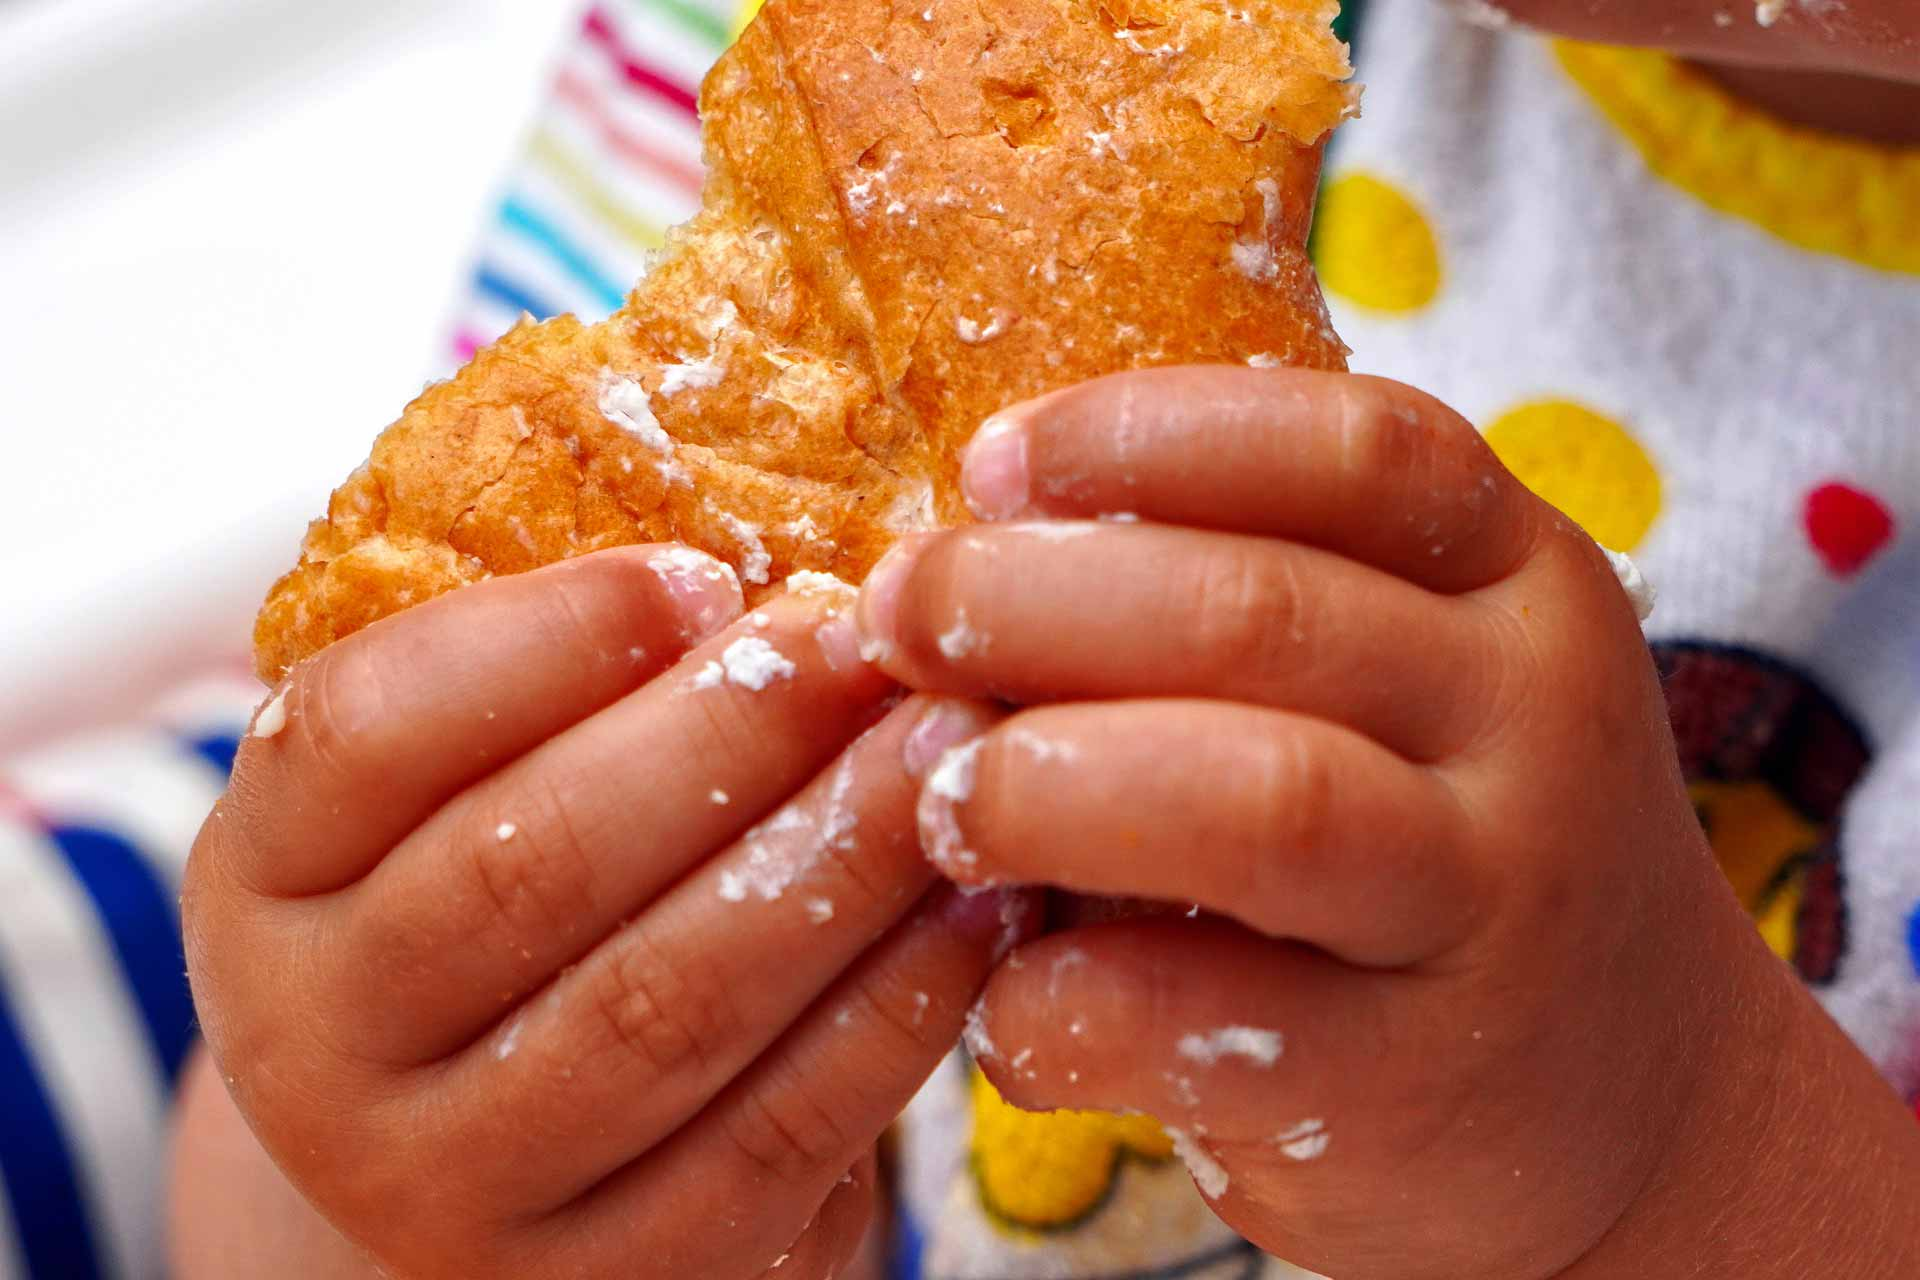 childrens hands eating